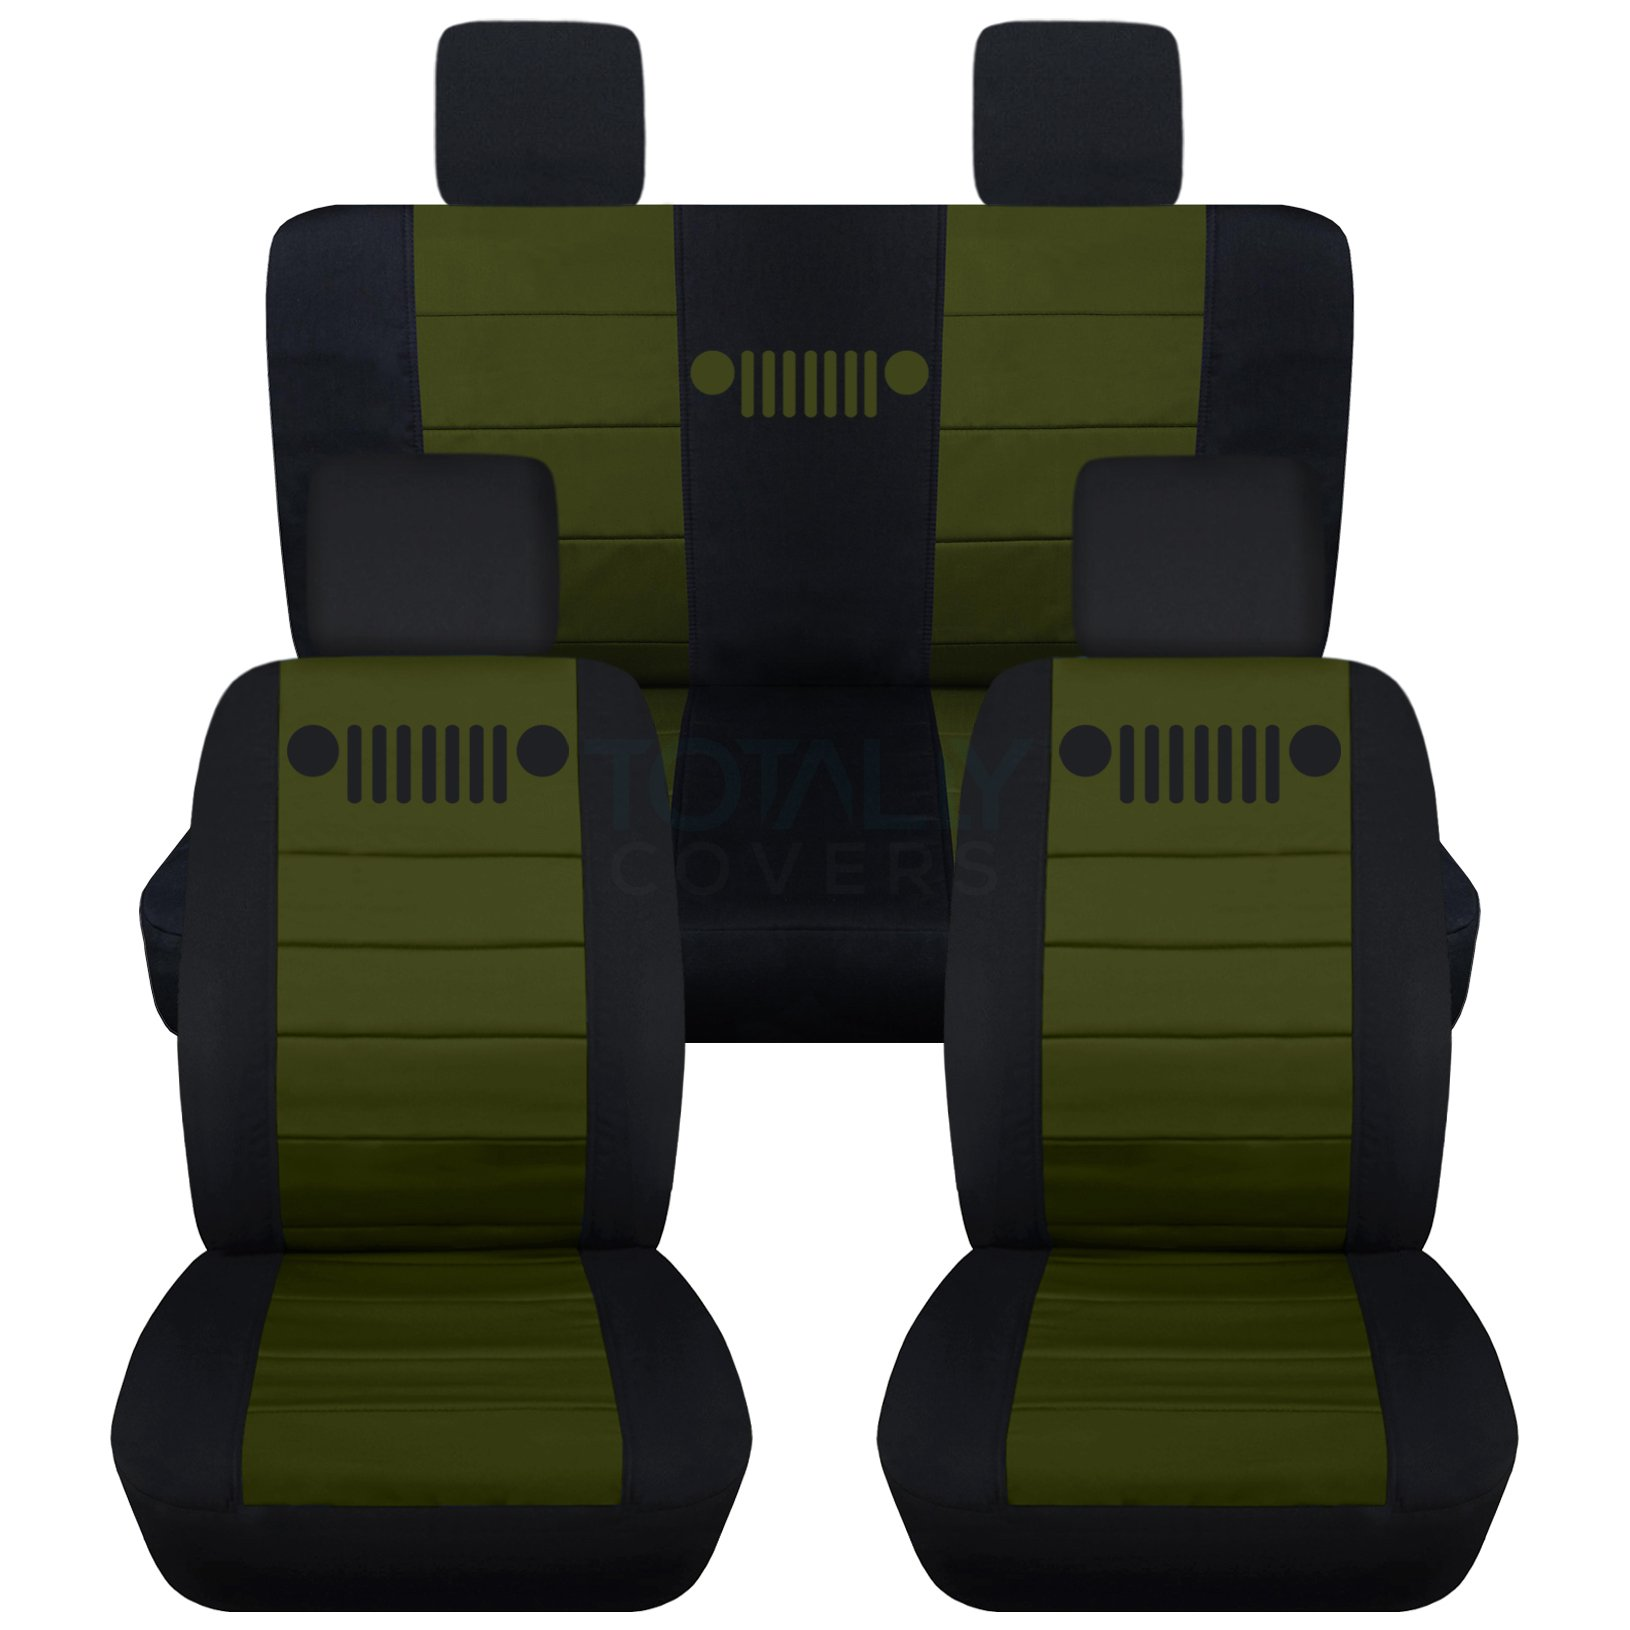 Totally Covers Fits 2007-2010 Jeep Wrangler JK Seat Covers: Black & Hunter Green - Full Set: Front & Rear (23 Colors) 2008 2009 2-Door/4-Door Complete Back Solid/Split Bench